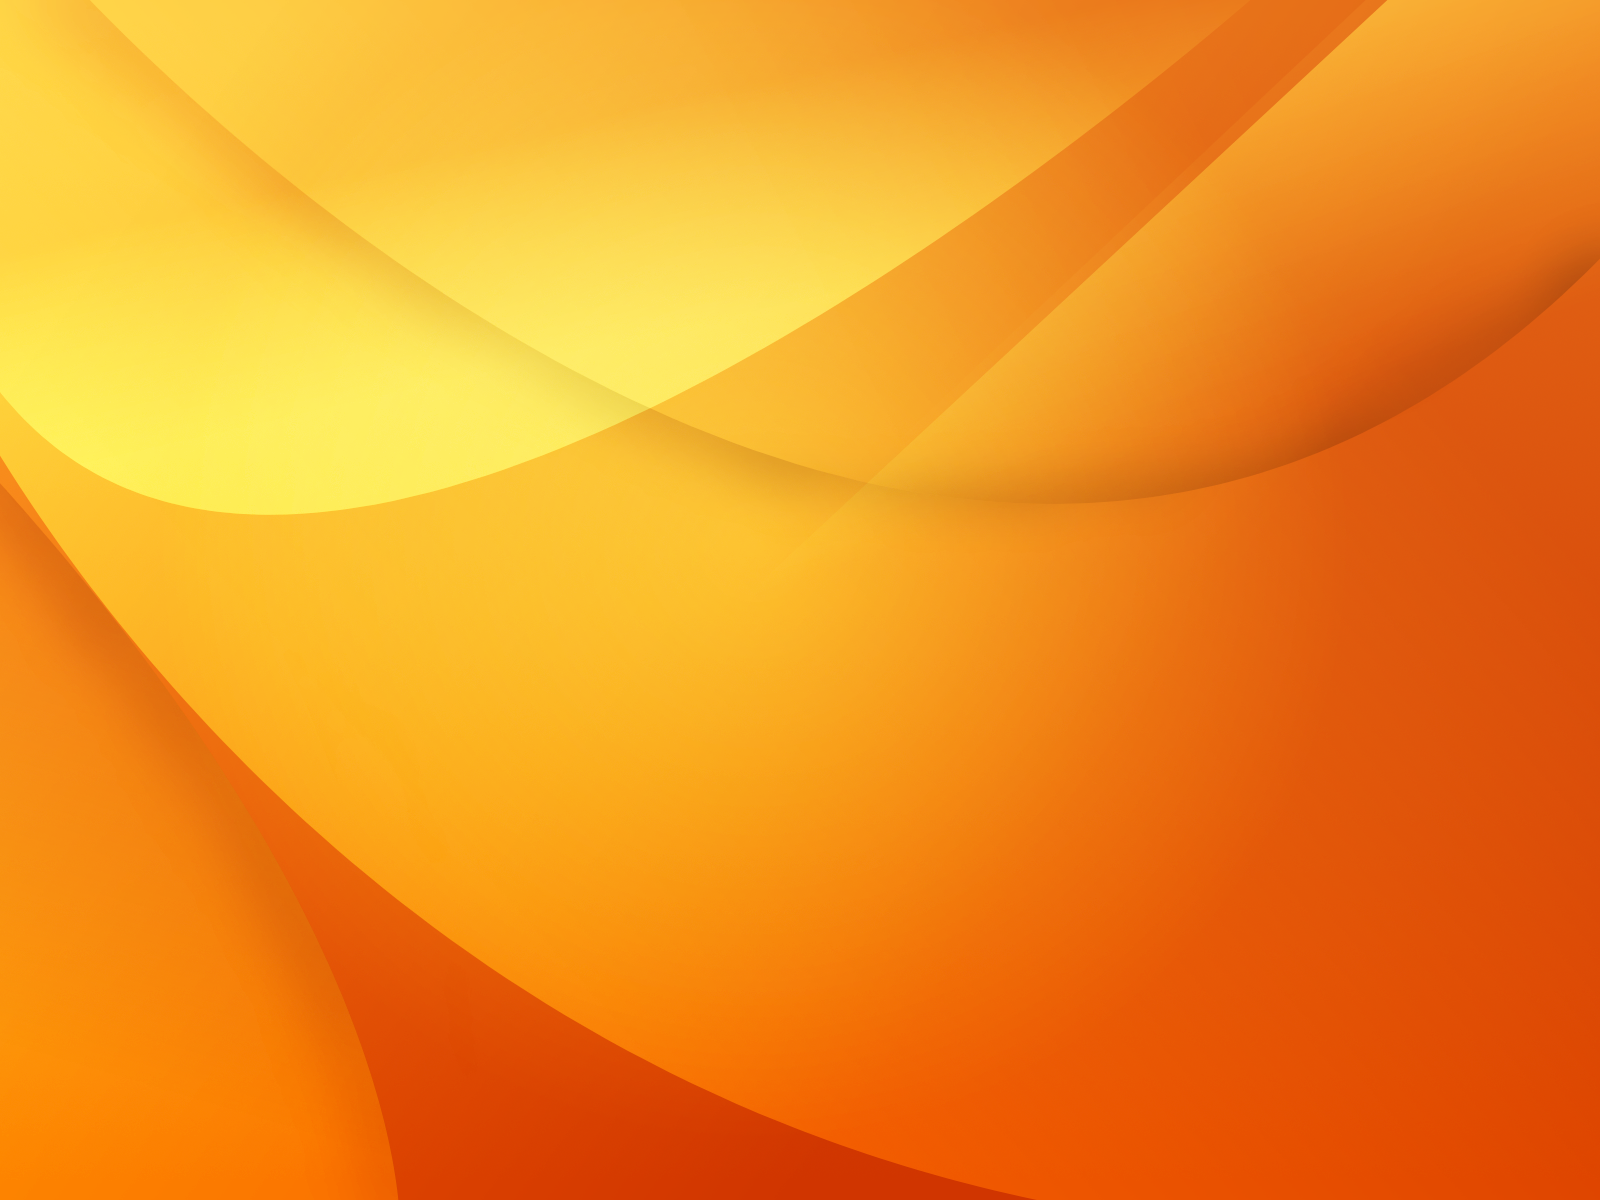 Soothing Orange Light by darthpenguin42 Soothing Orange Light by darthpenguin42